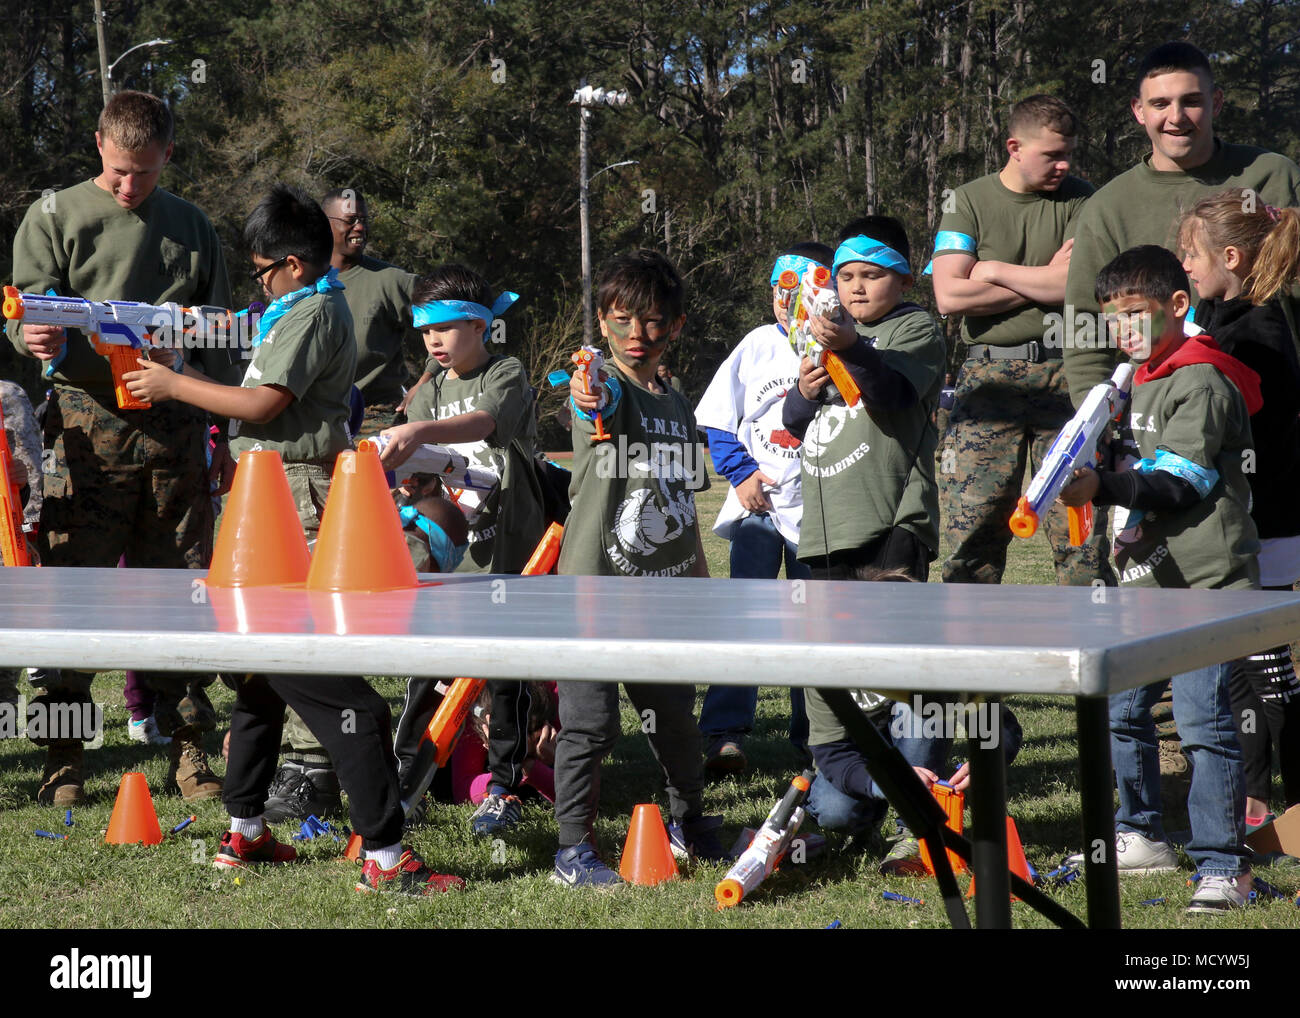 Children take aim at the toy rifle range during Mini Marines aboard Marine Corps Air Station Beaufort, March 3. The event was hosted by Marine Corps Community Services South Carolina to show the children what their parents do at work. The event also featured a mock CFT, a sack race and a Marine Corps Martial Arts Station. - Stock Image